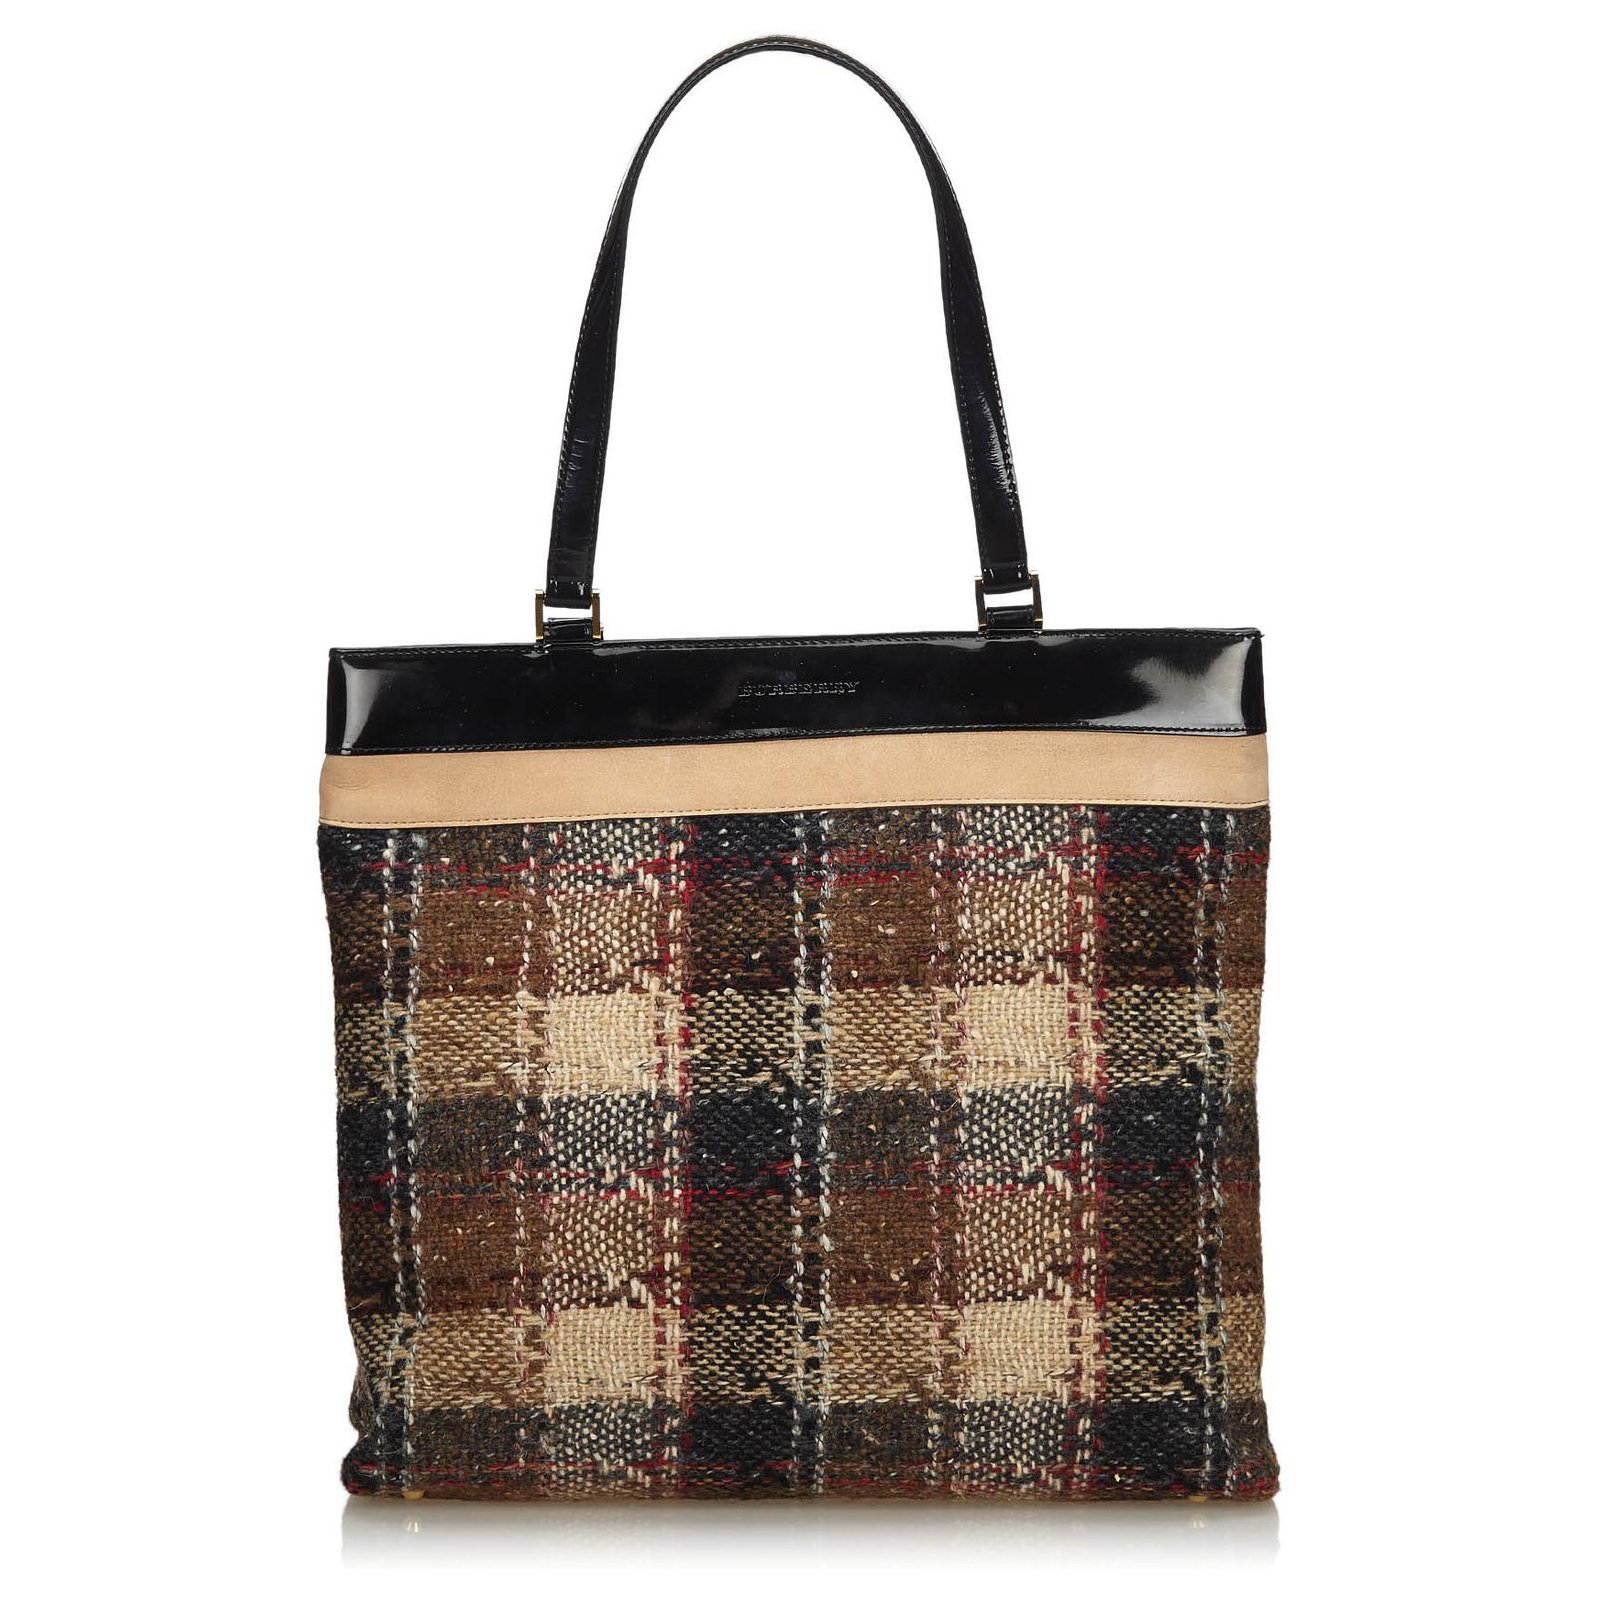 Burberry Brown Wool Tote Bag Totes Leather Patent